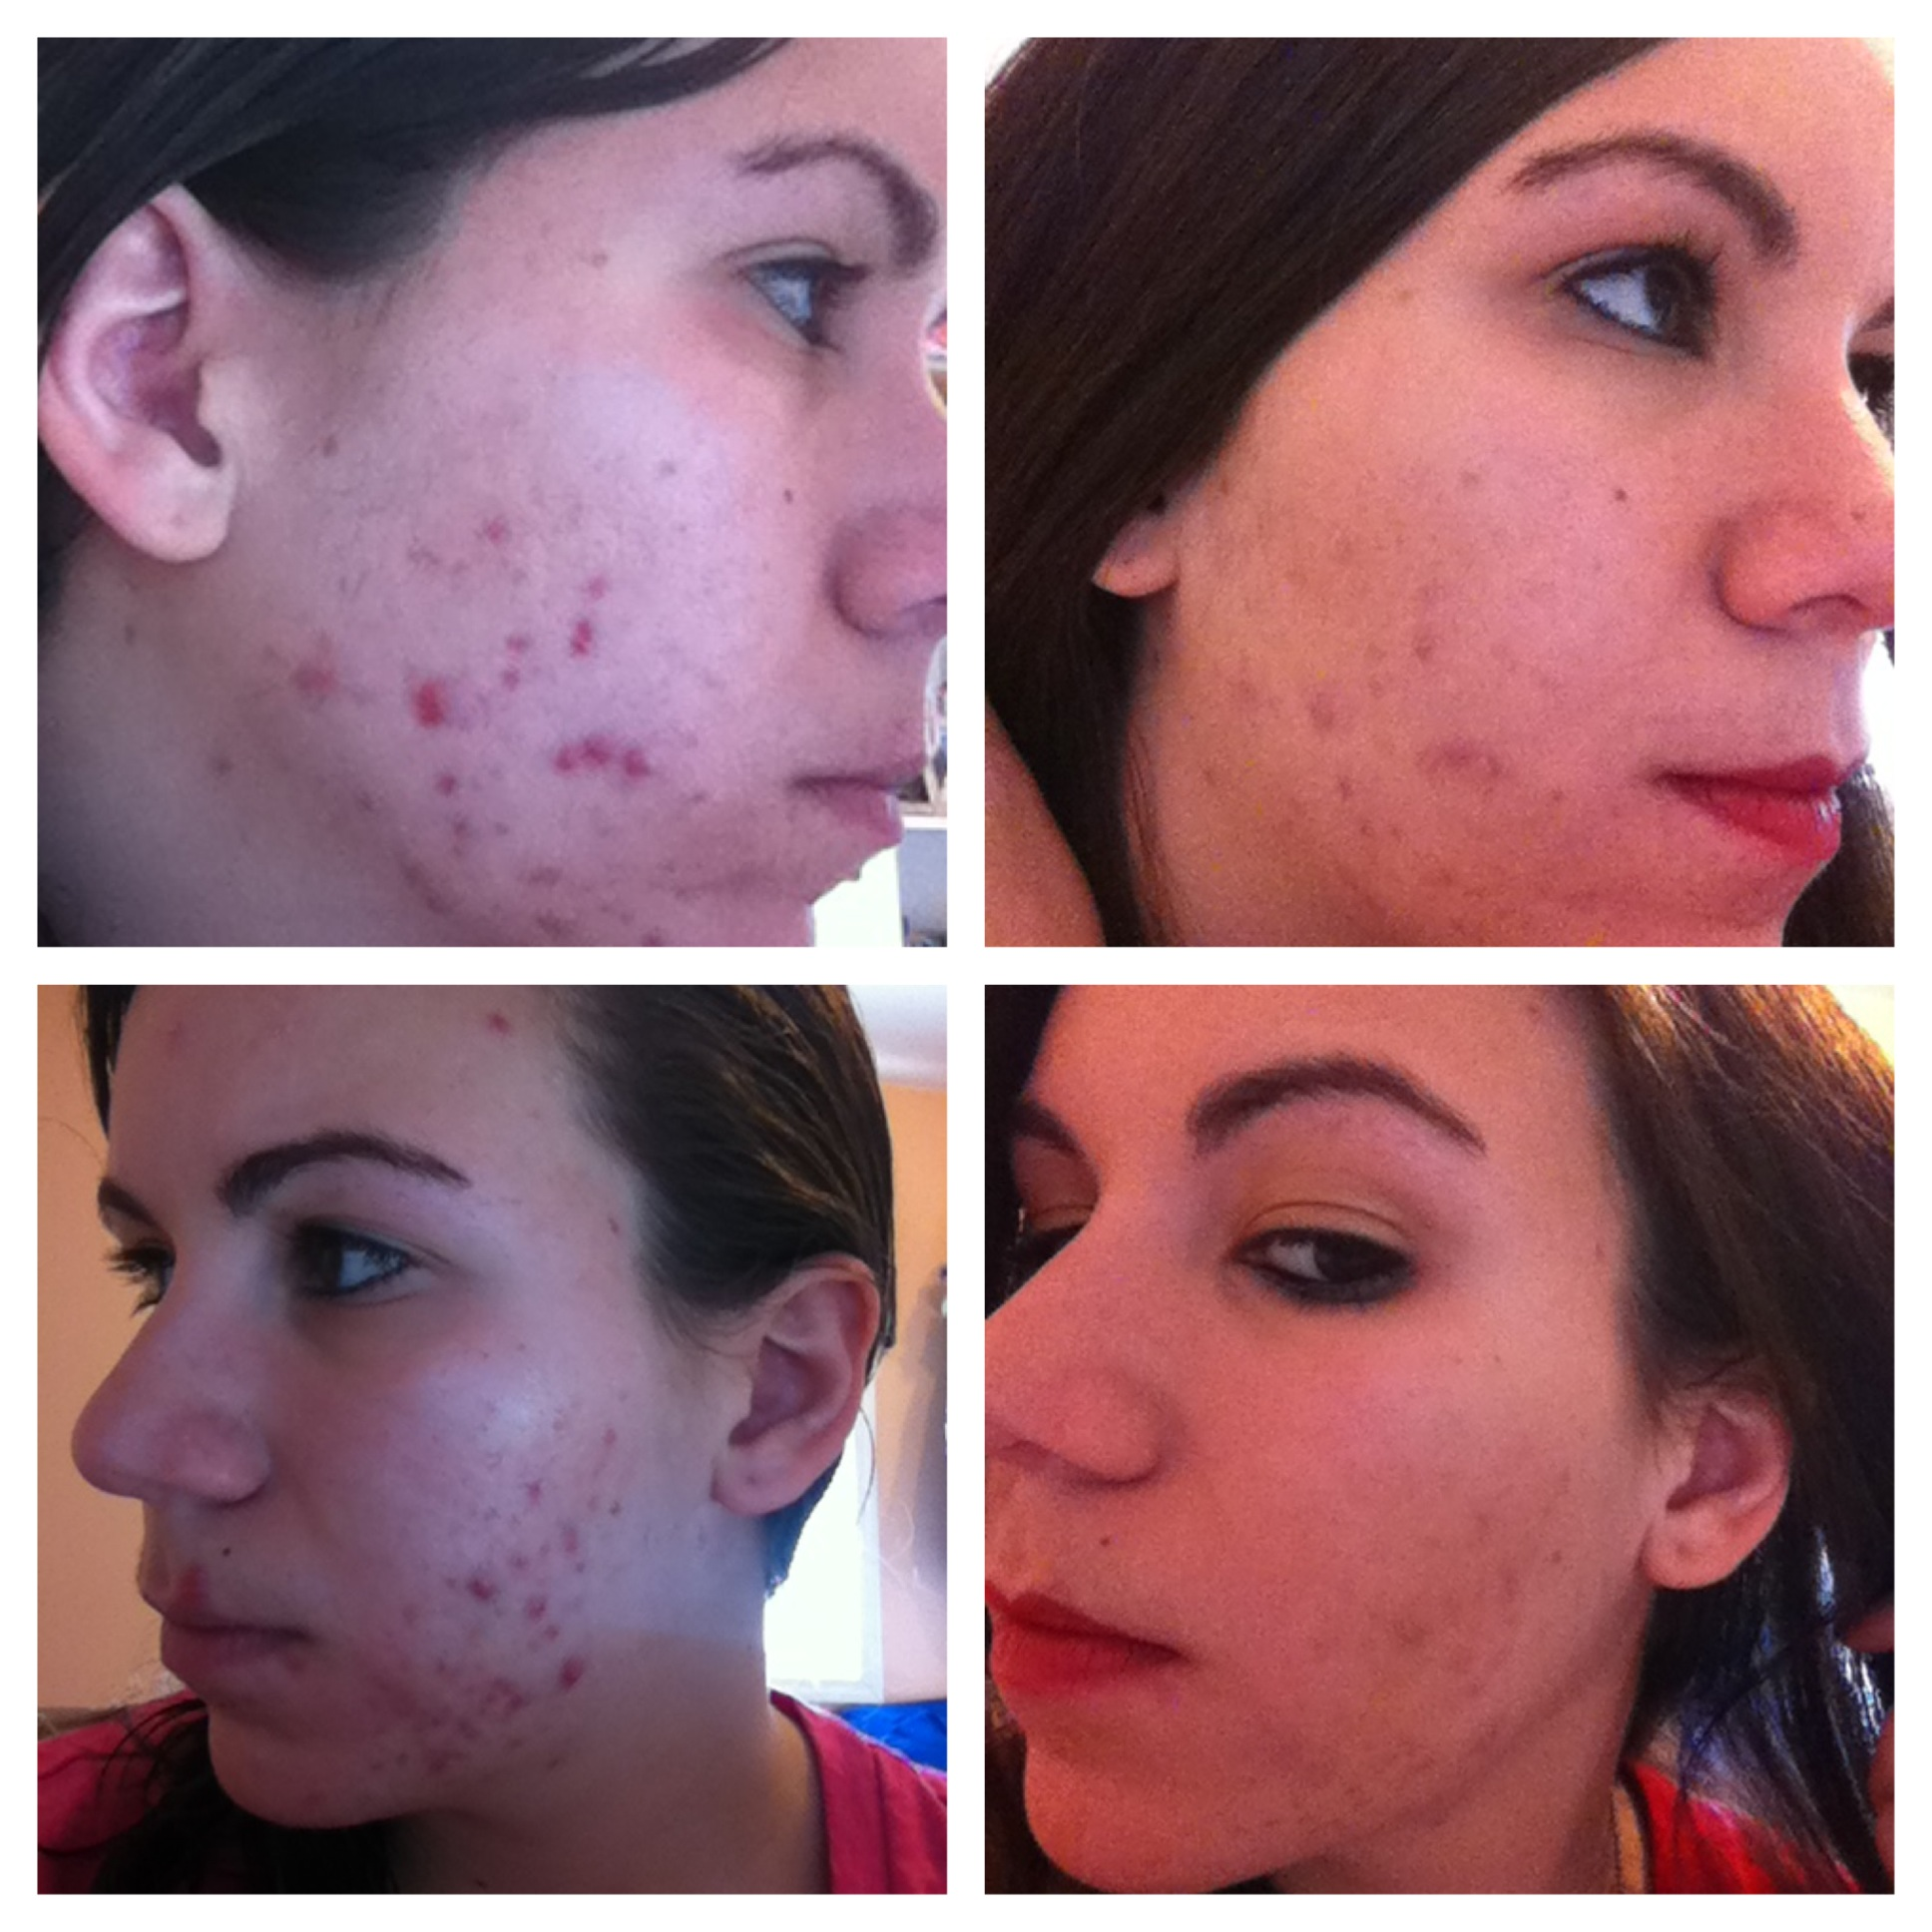 My Strange Acne Timeline (After Accutane 2X) - The Beginning